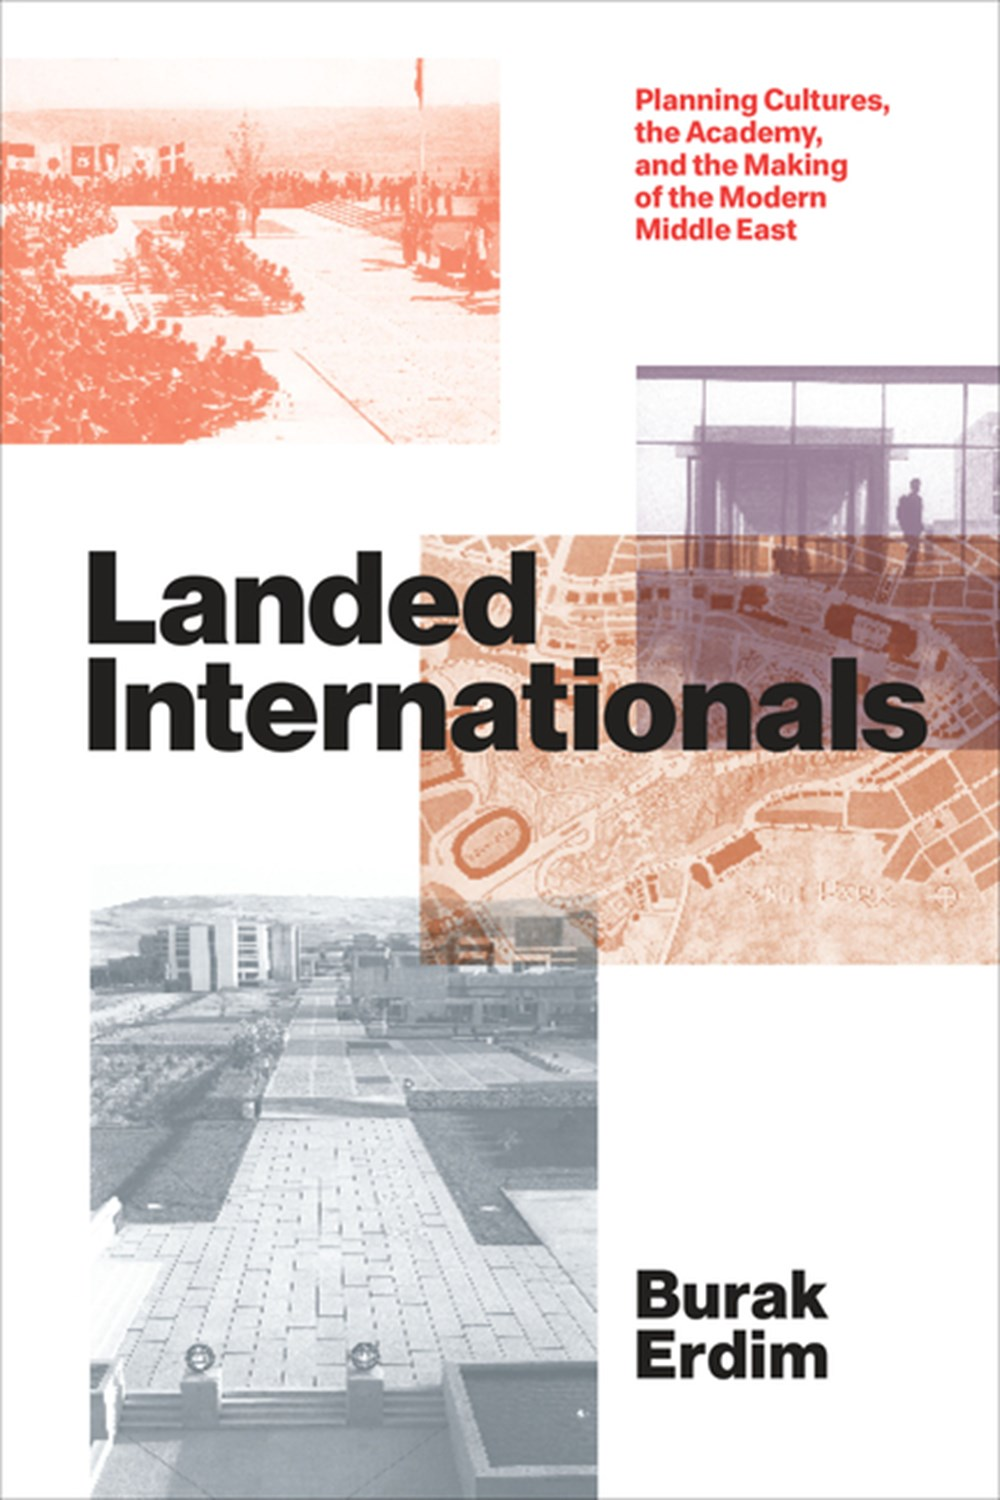 Landed Internationals Planning Cultures, the Academy, and the Making of the Modern Middle East